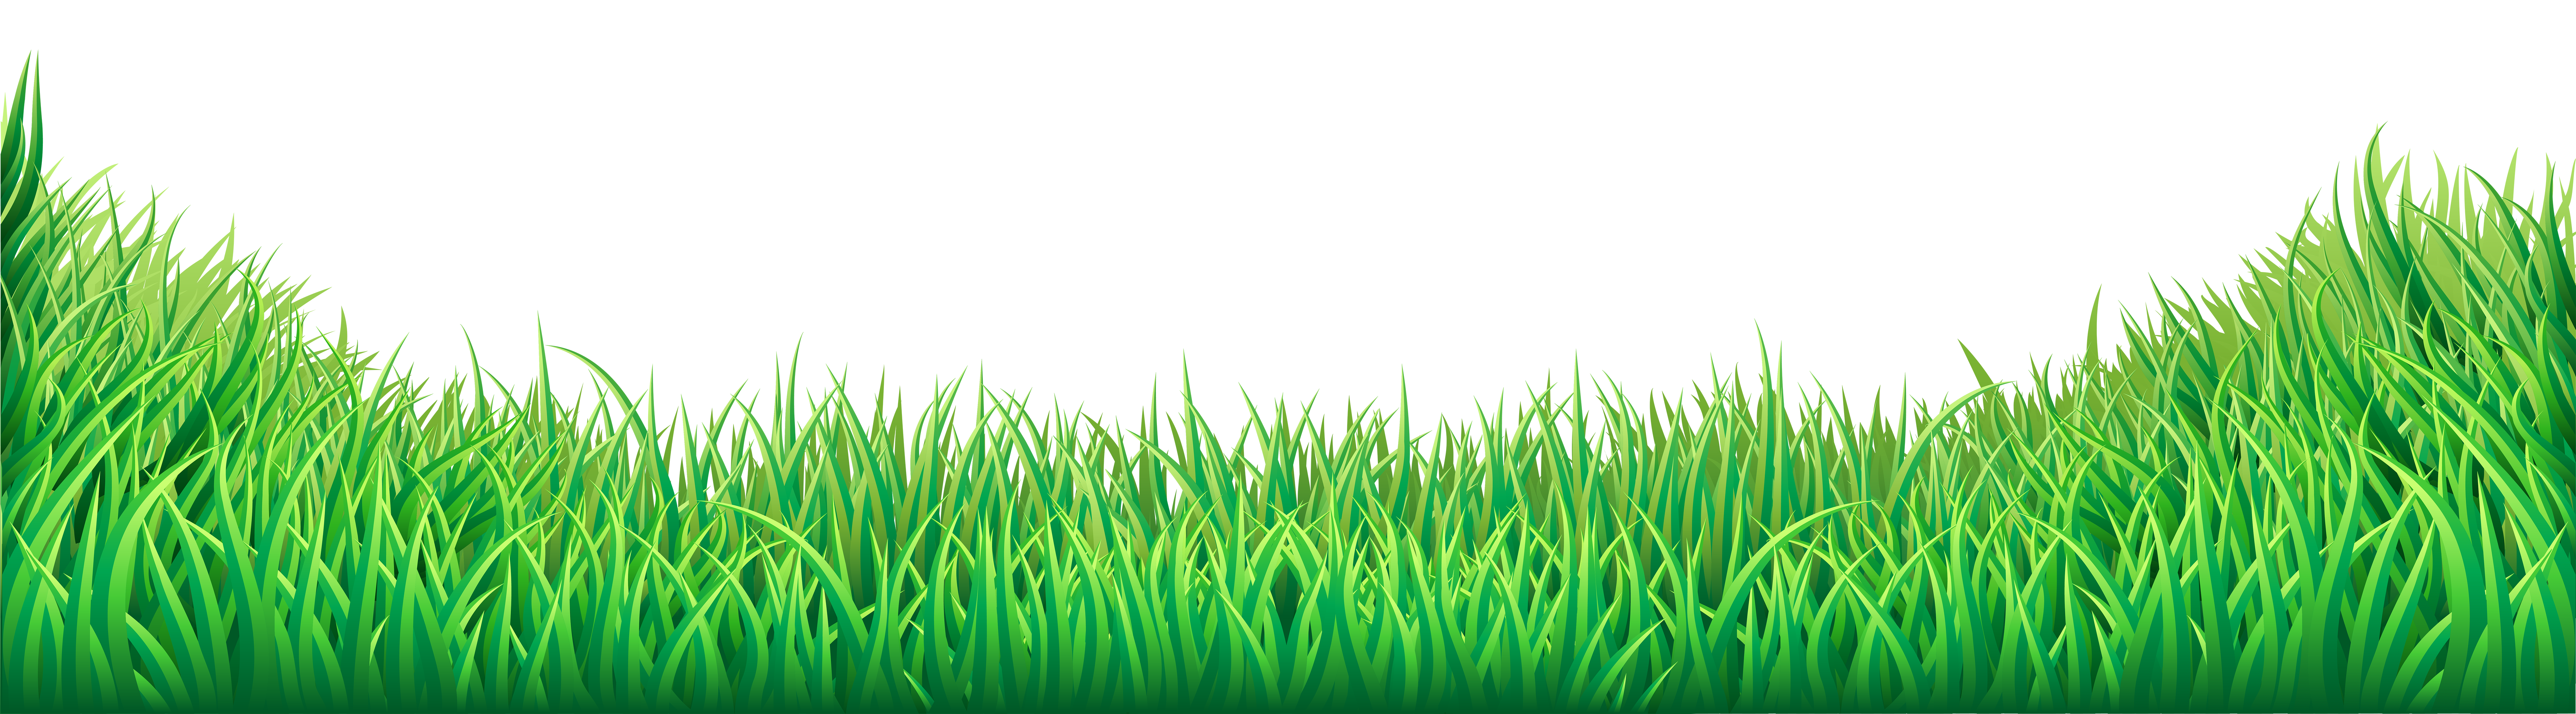 Grass sun clipart clip freeuse Grass PNG Transparent Clip Art Image | Gallery Yopriceville - High ... clip freeuse